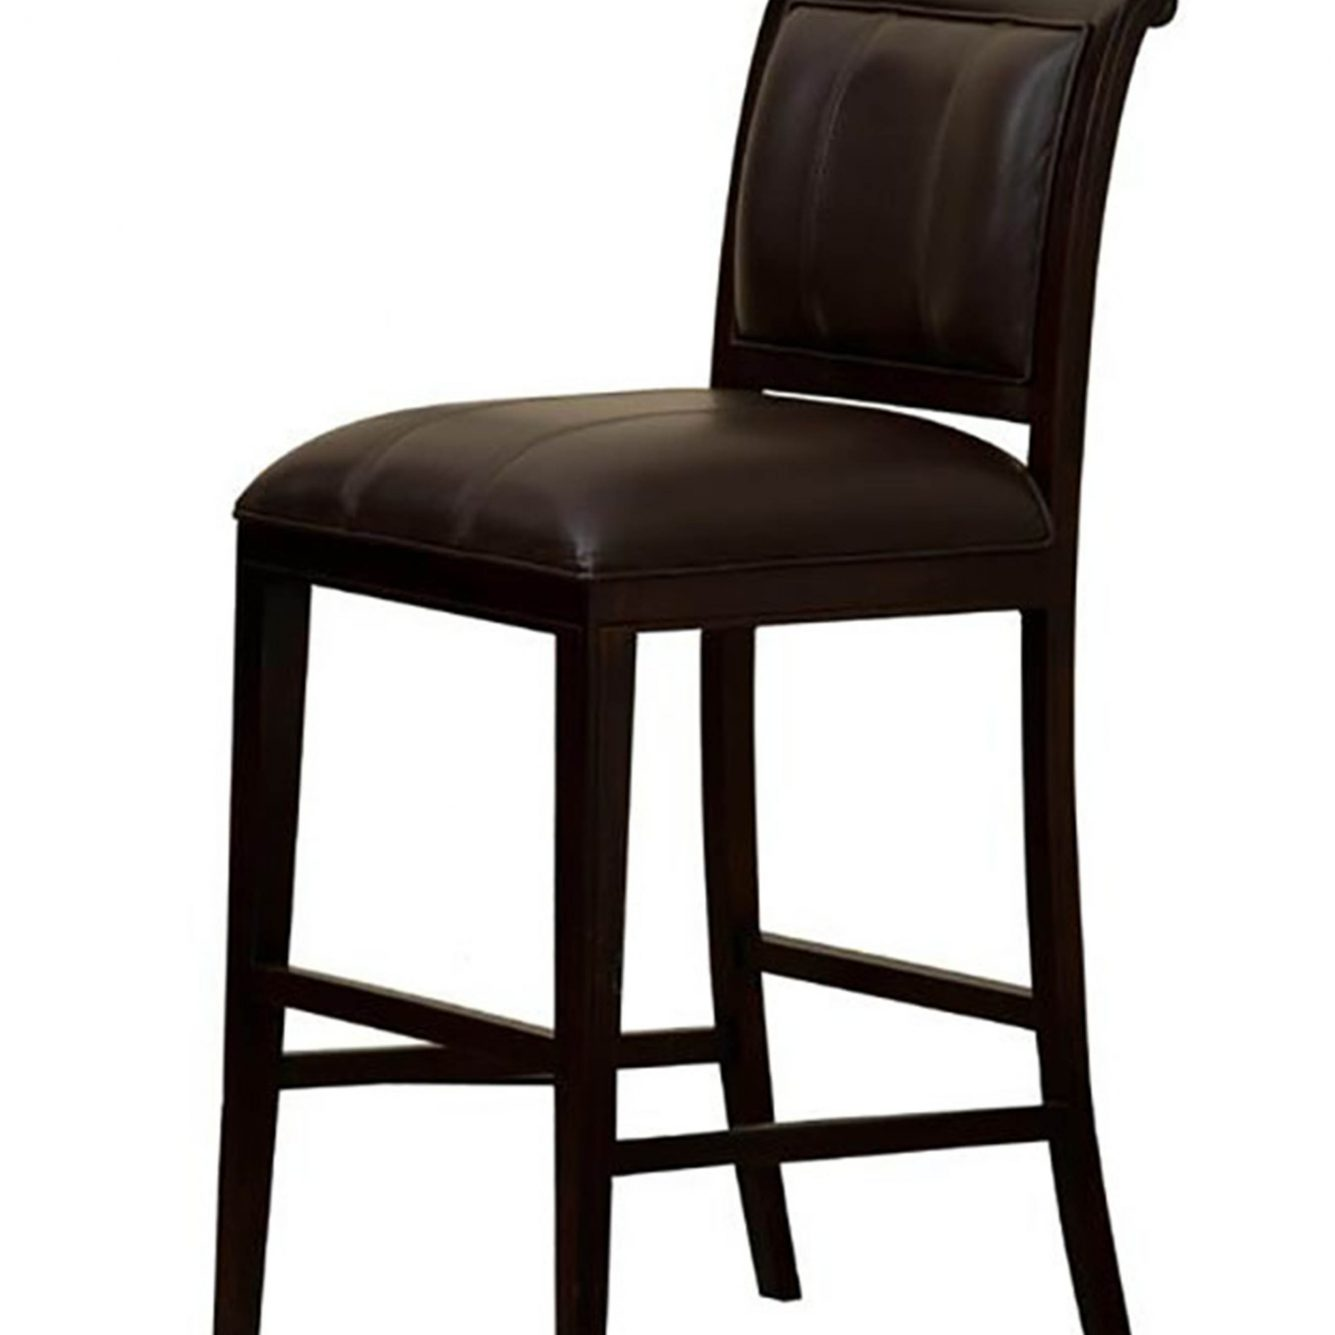 House Haven Dining Chairs 0014 Directoire Barstool